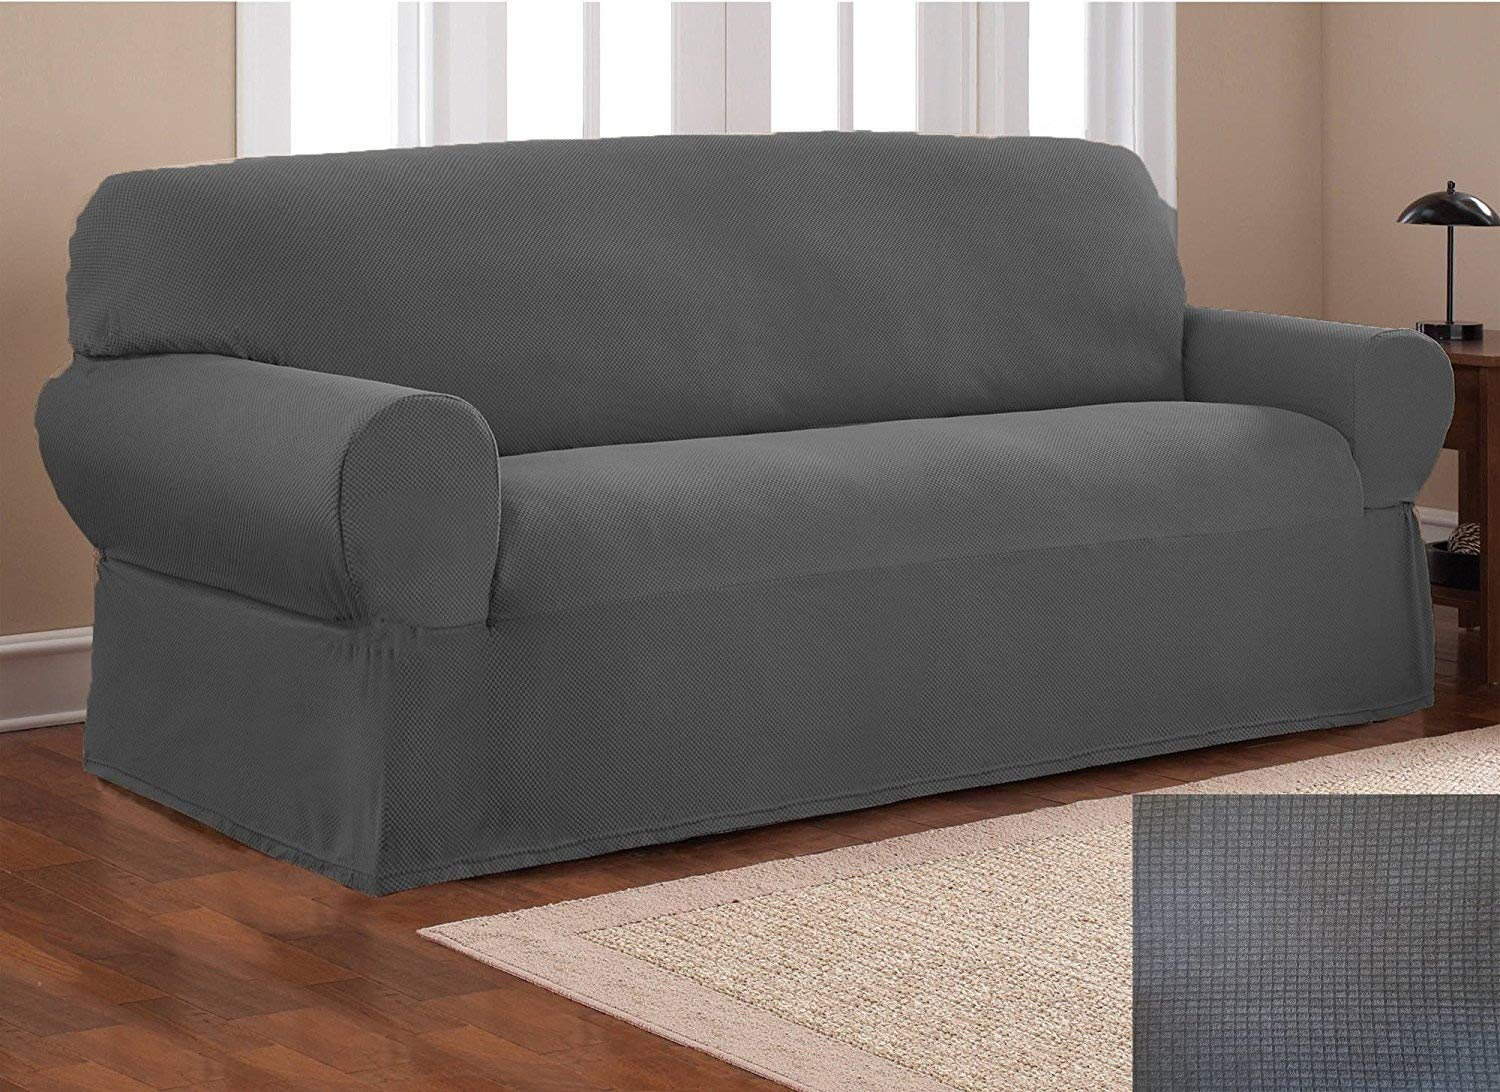 (2 pc Set, Charcoal/Dark Grey) - Fancy Collection Sure Fit Stretch Fabric Sofa Slipcover 2 Pc Sofa And Love Seat Covers Solid Dark Grey New Stella B0768MNCB7